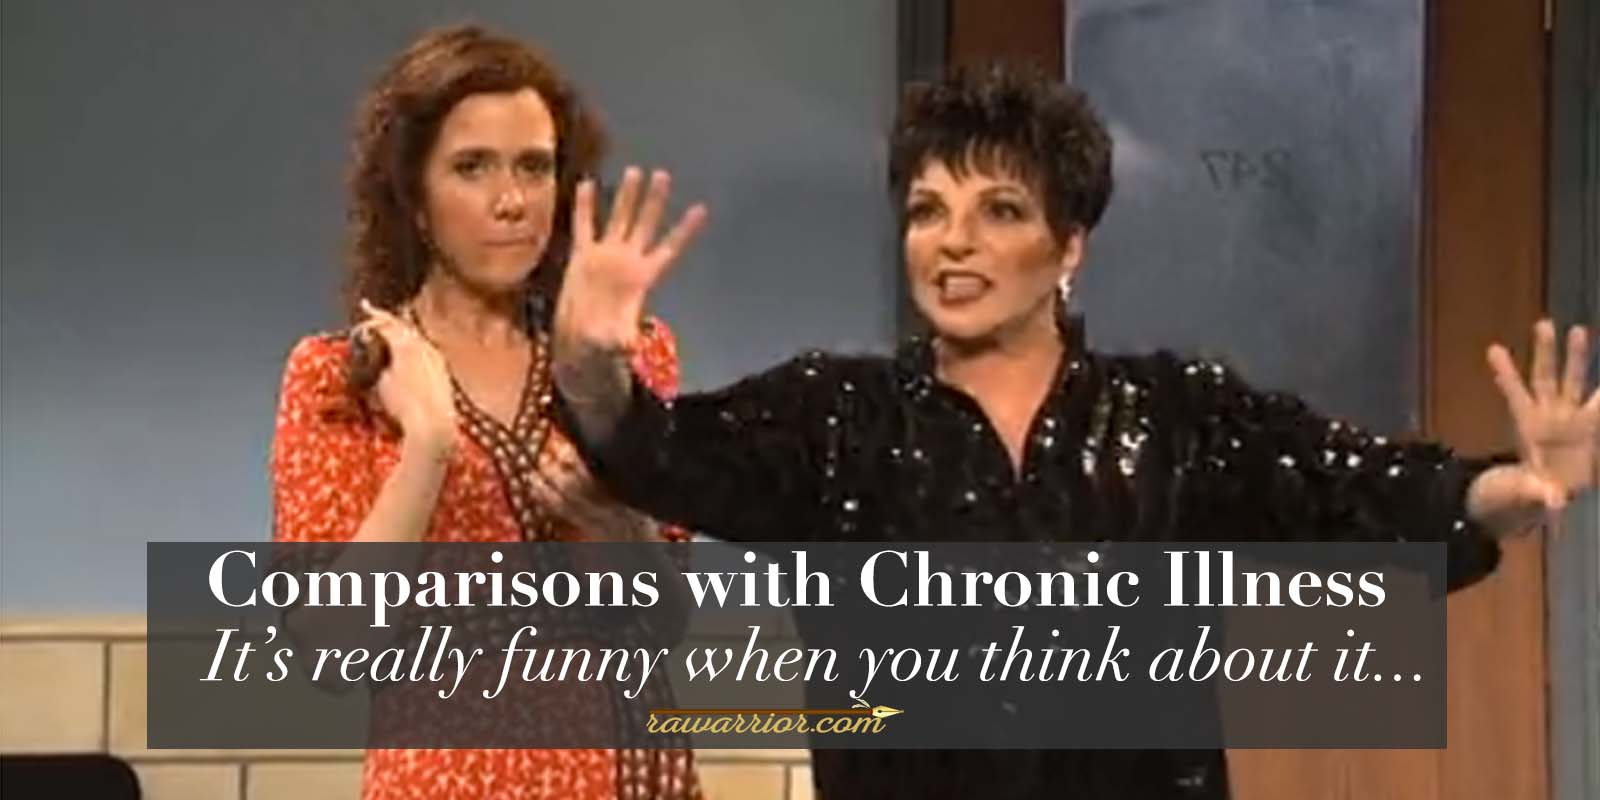 Comparisons with Chronic Illness Kirsten Wiig